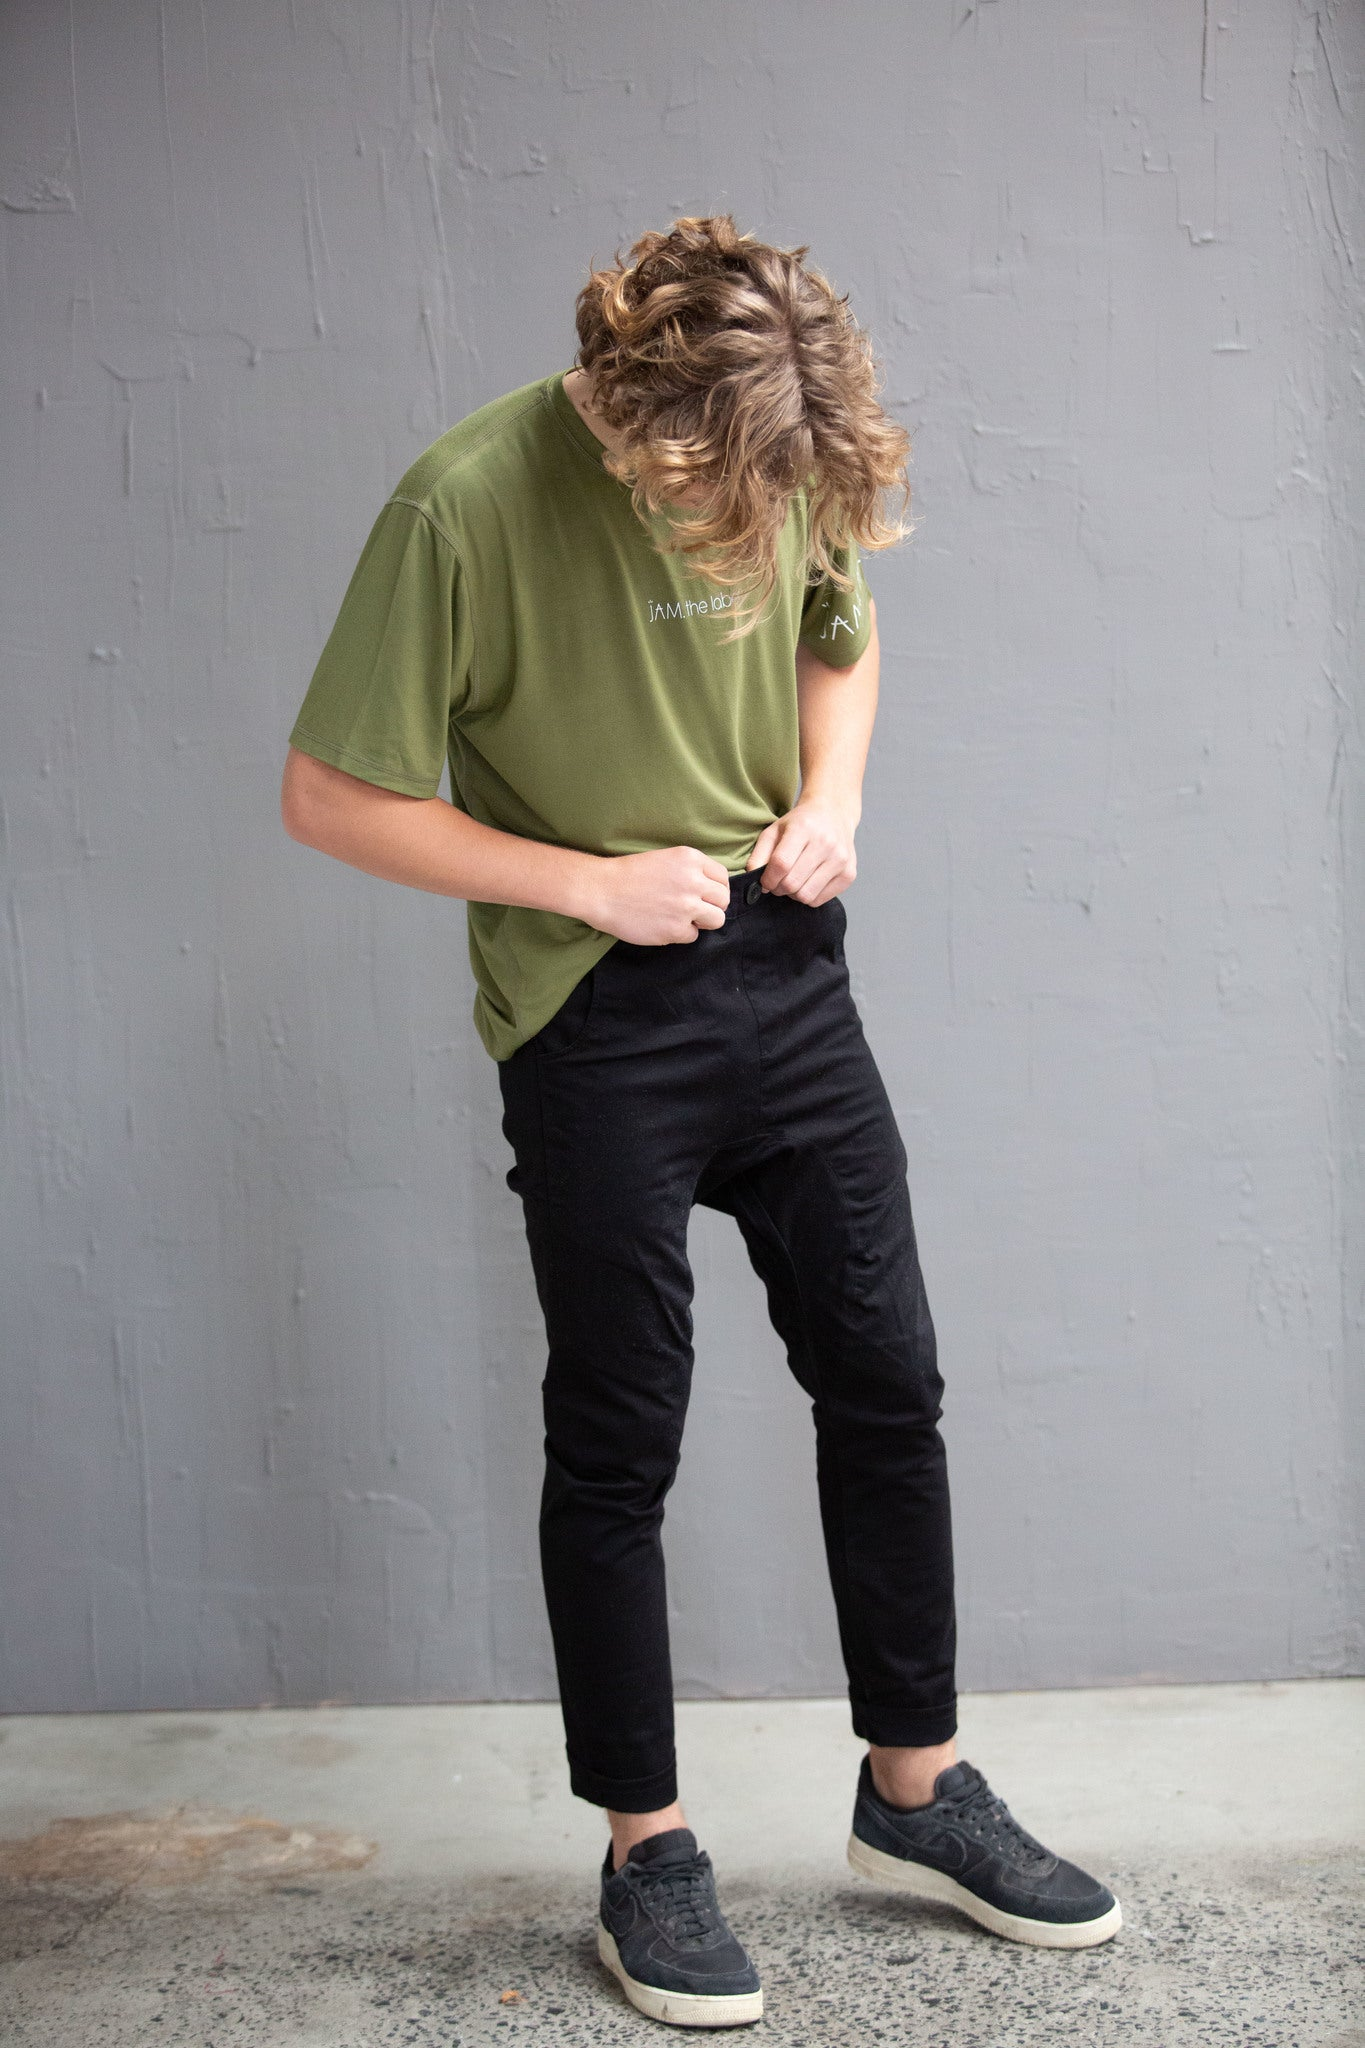 A young white man with blonde curly hair is standing in front of a grey wall. He is looking down at himself. He is wearing an olive green top, black chinos and black shoes.